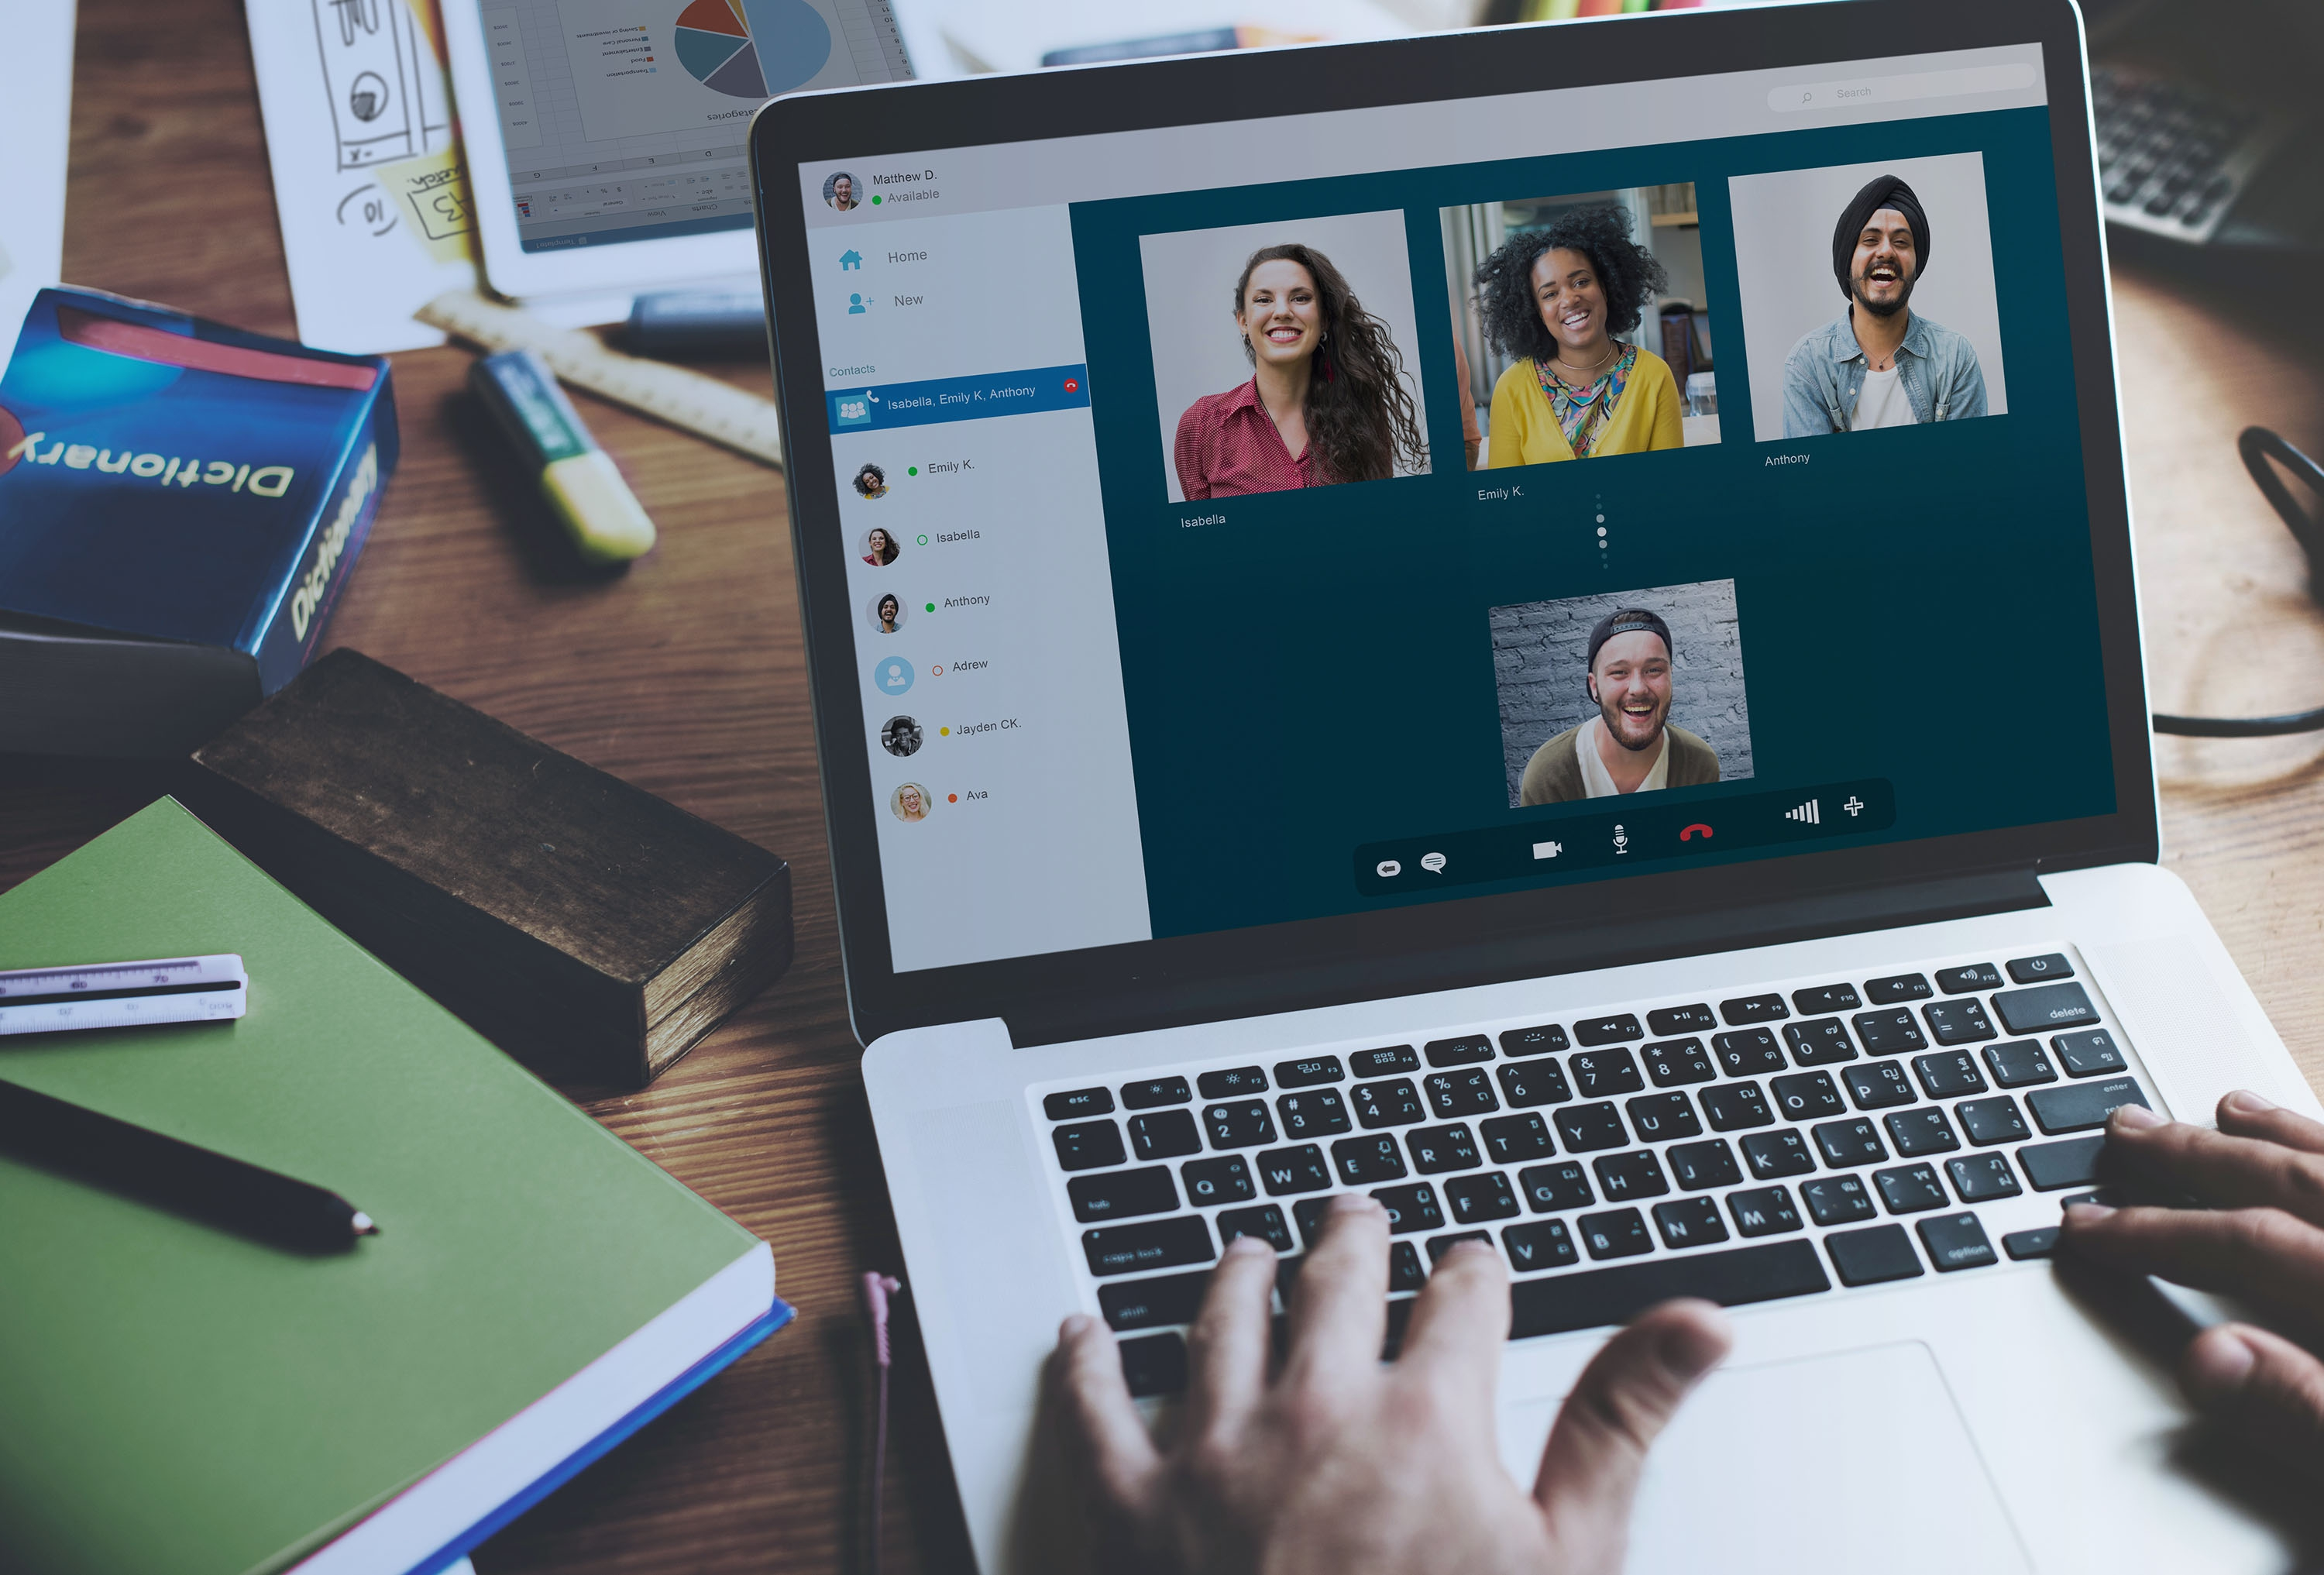 Breaking the wall of international education through virtual student exchange